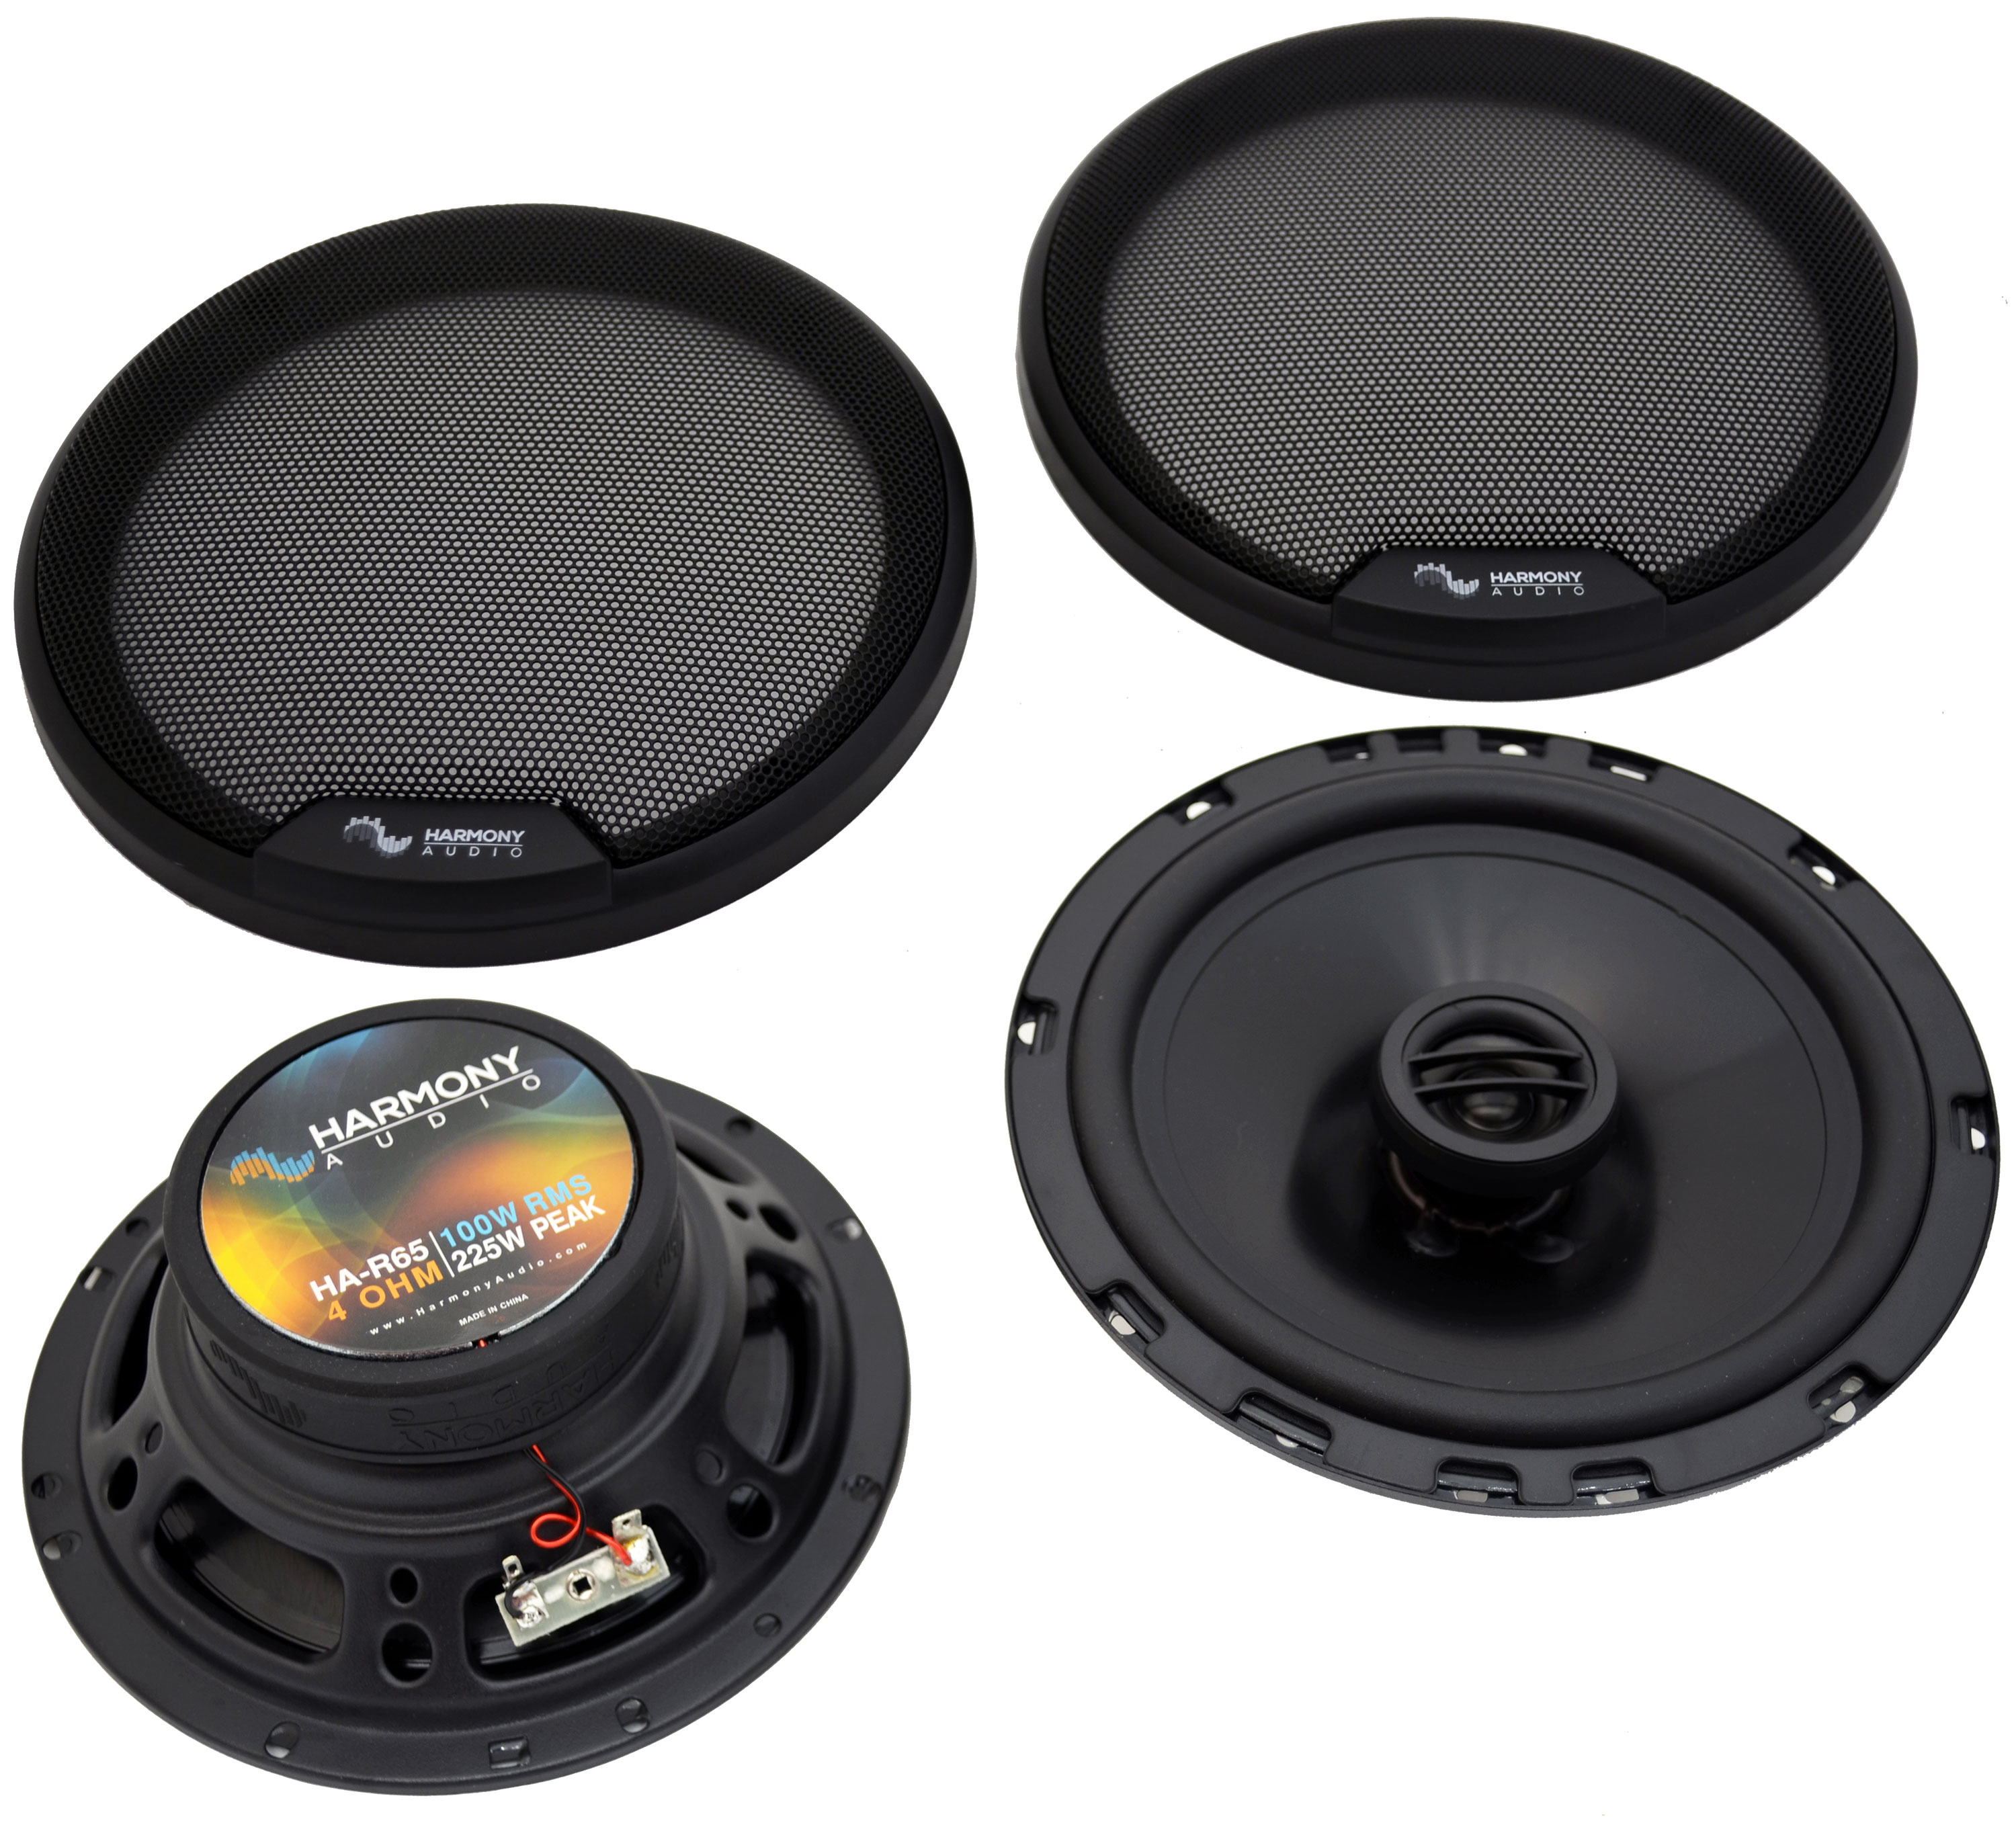 Fits Toyota Prius 2001-2003 Rear Deck Replacement Harmony HA-R65 Speakers New